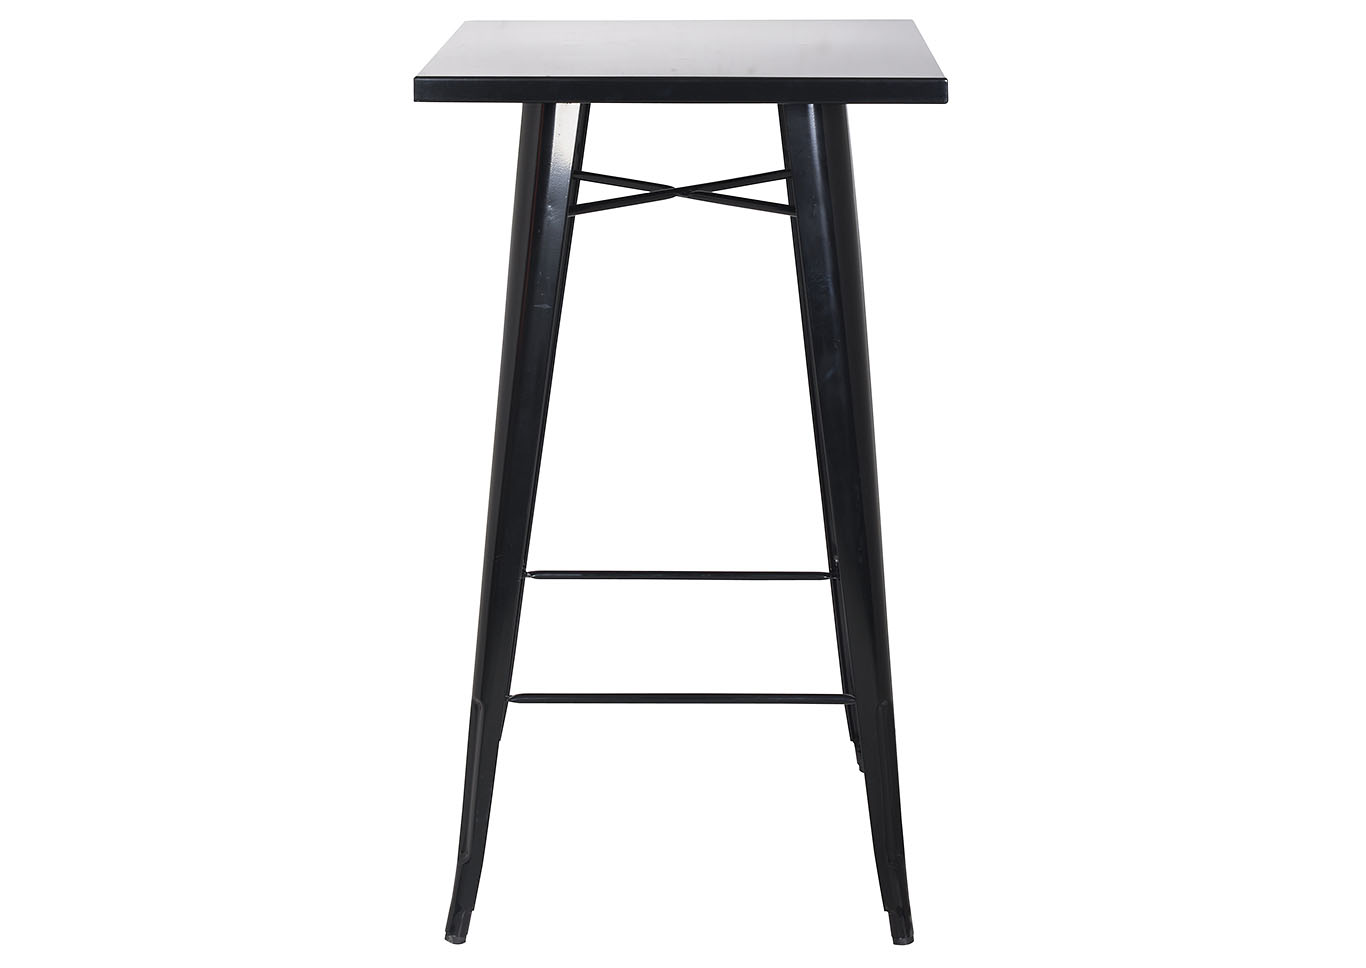 Black Galvanized Steel Bar Table,Chintaly Imports